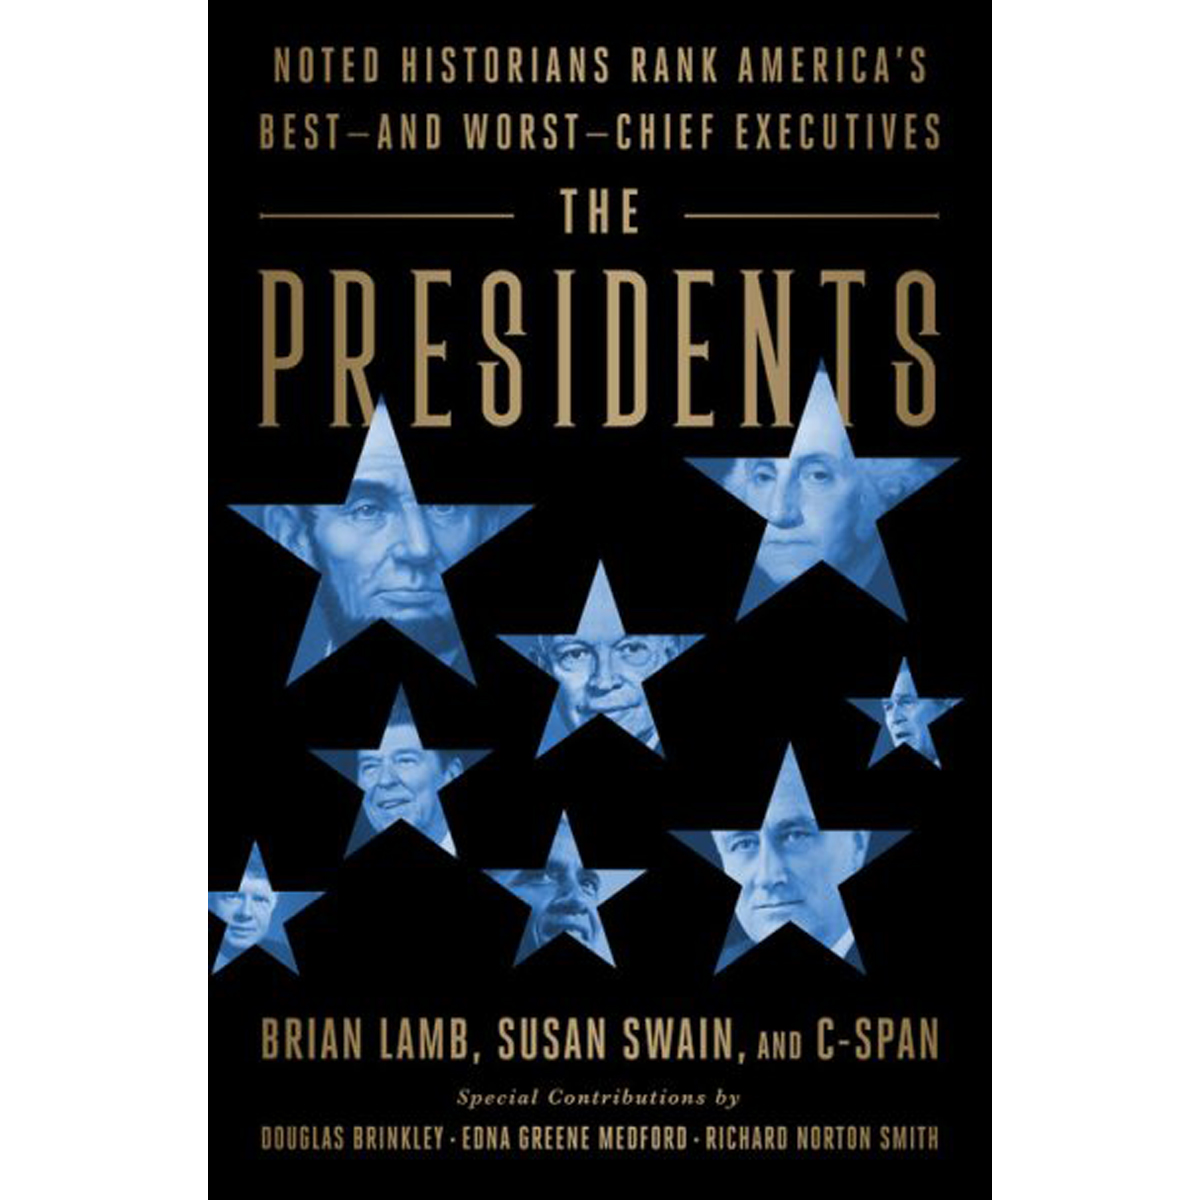 The Presidents: Noted Historians Rank America's Best--and Worst--Chief Executives - Paperback Version